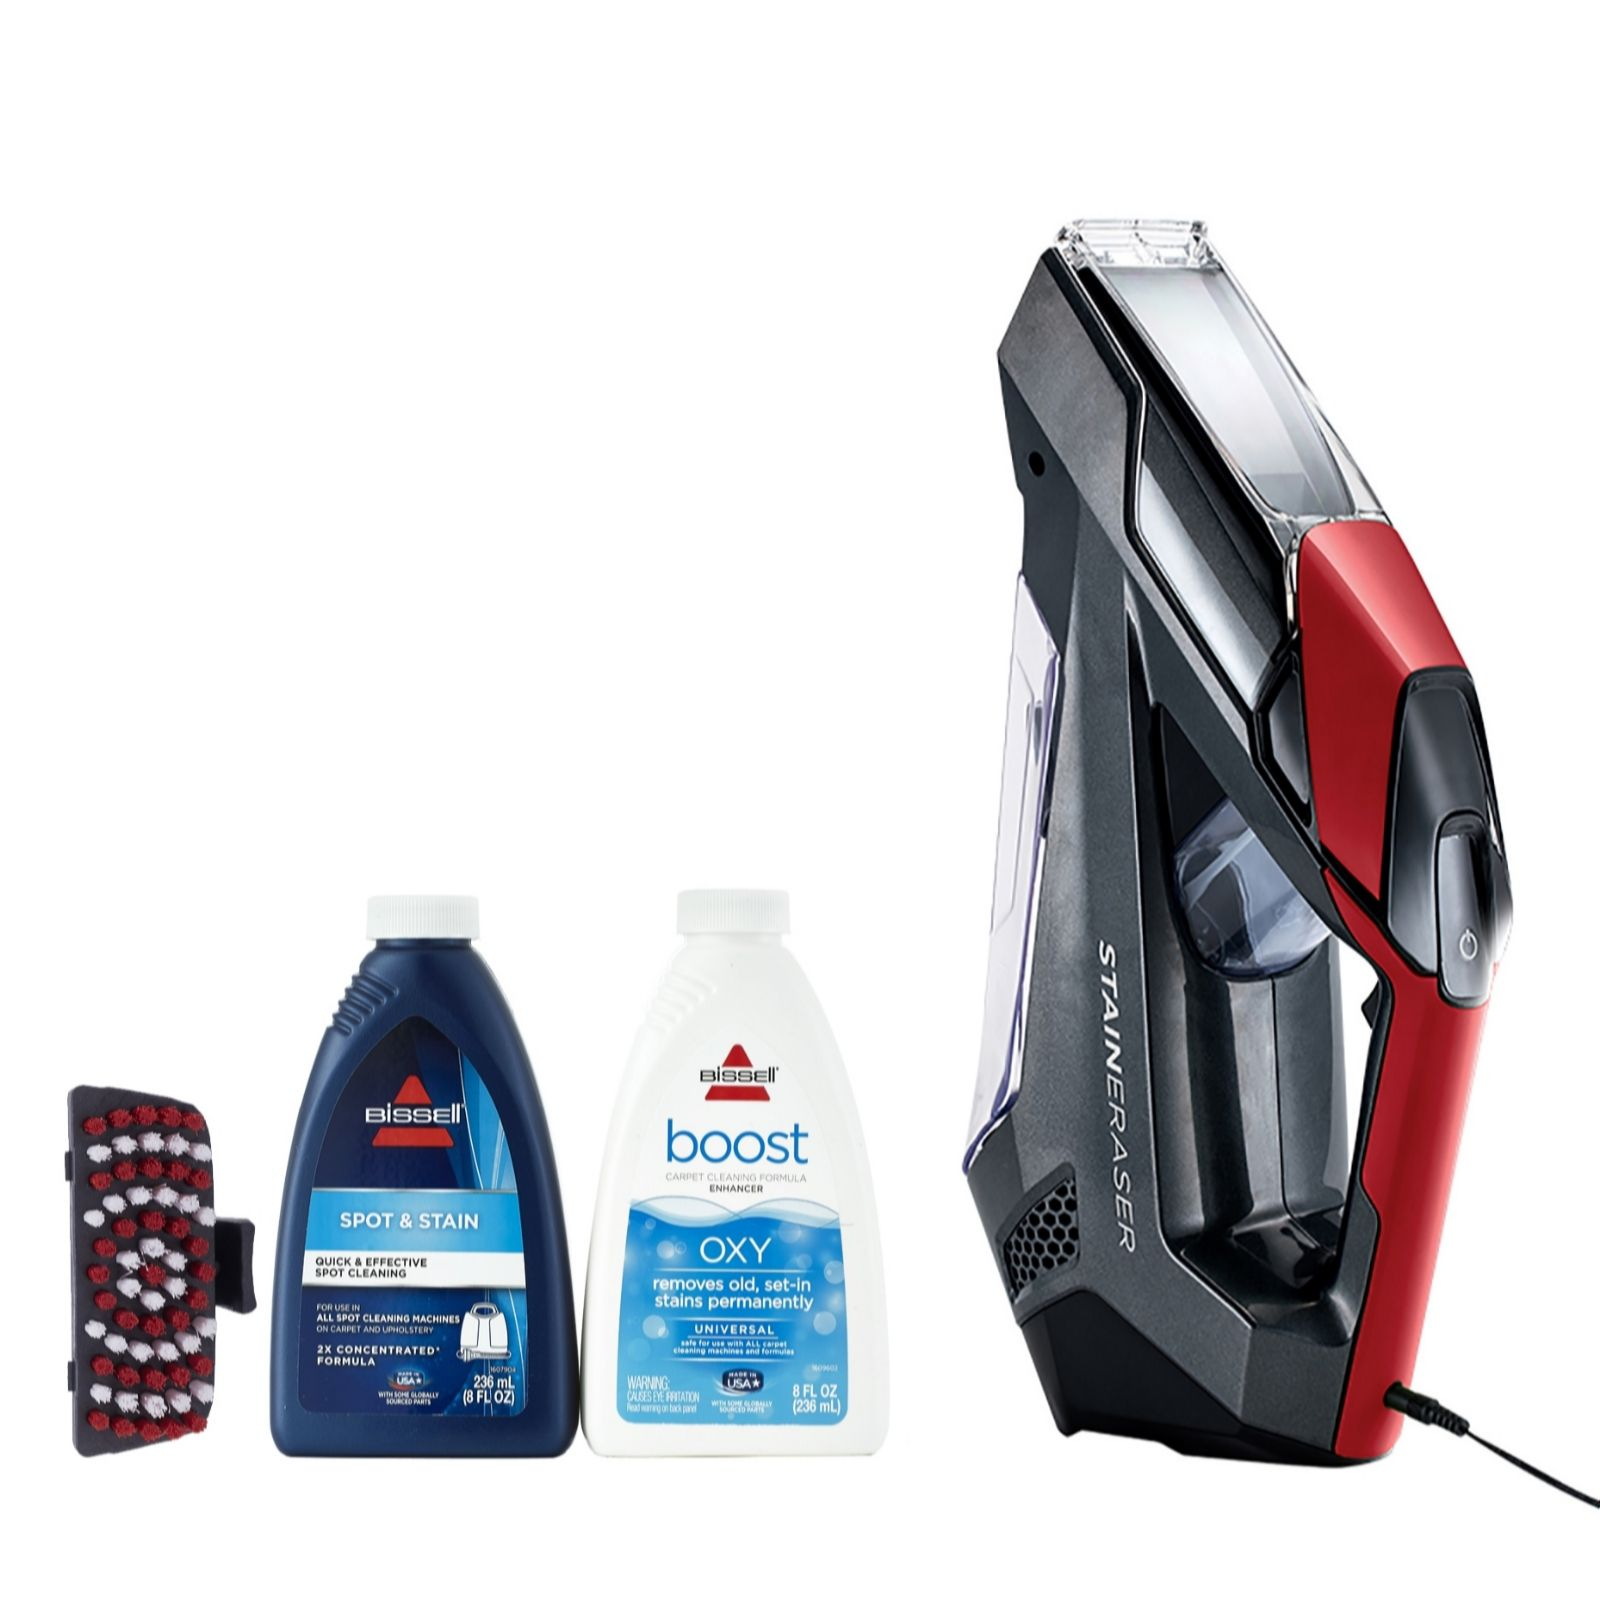 bissell cordless stain eraser handheld carpet u0026 upholstery stain remover